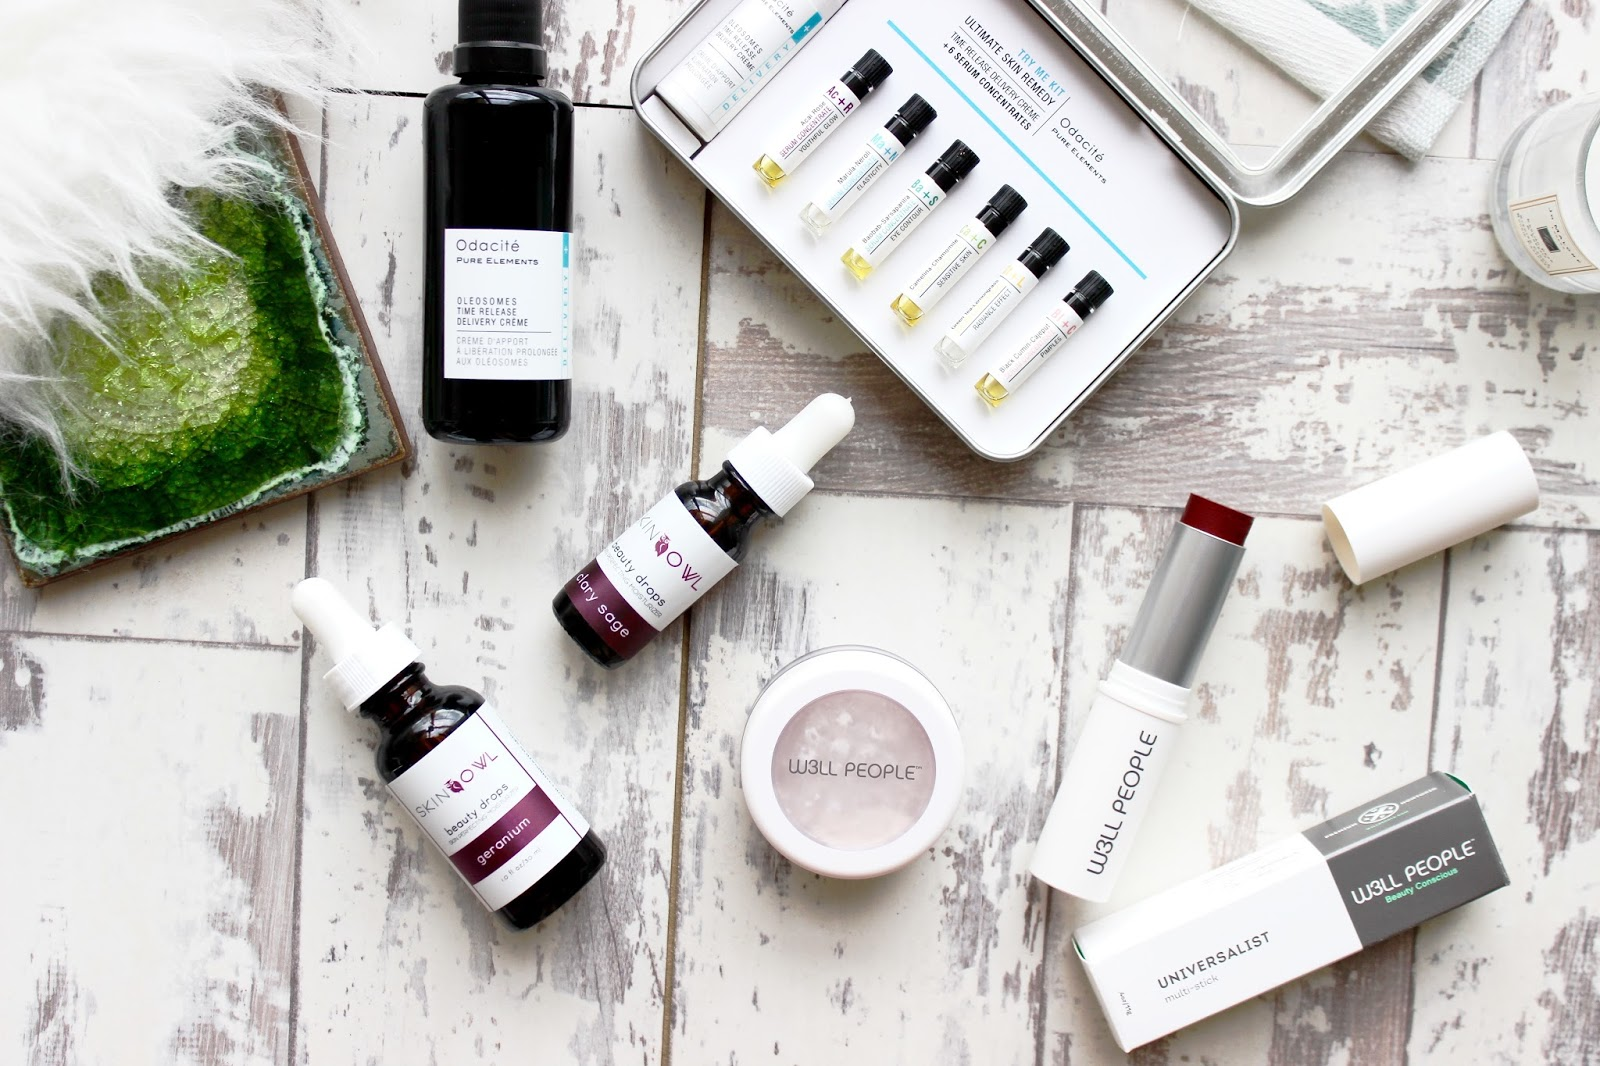 New Products From Cult Beauty